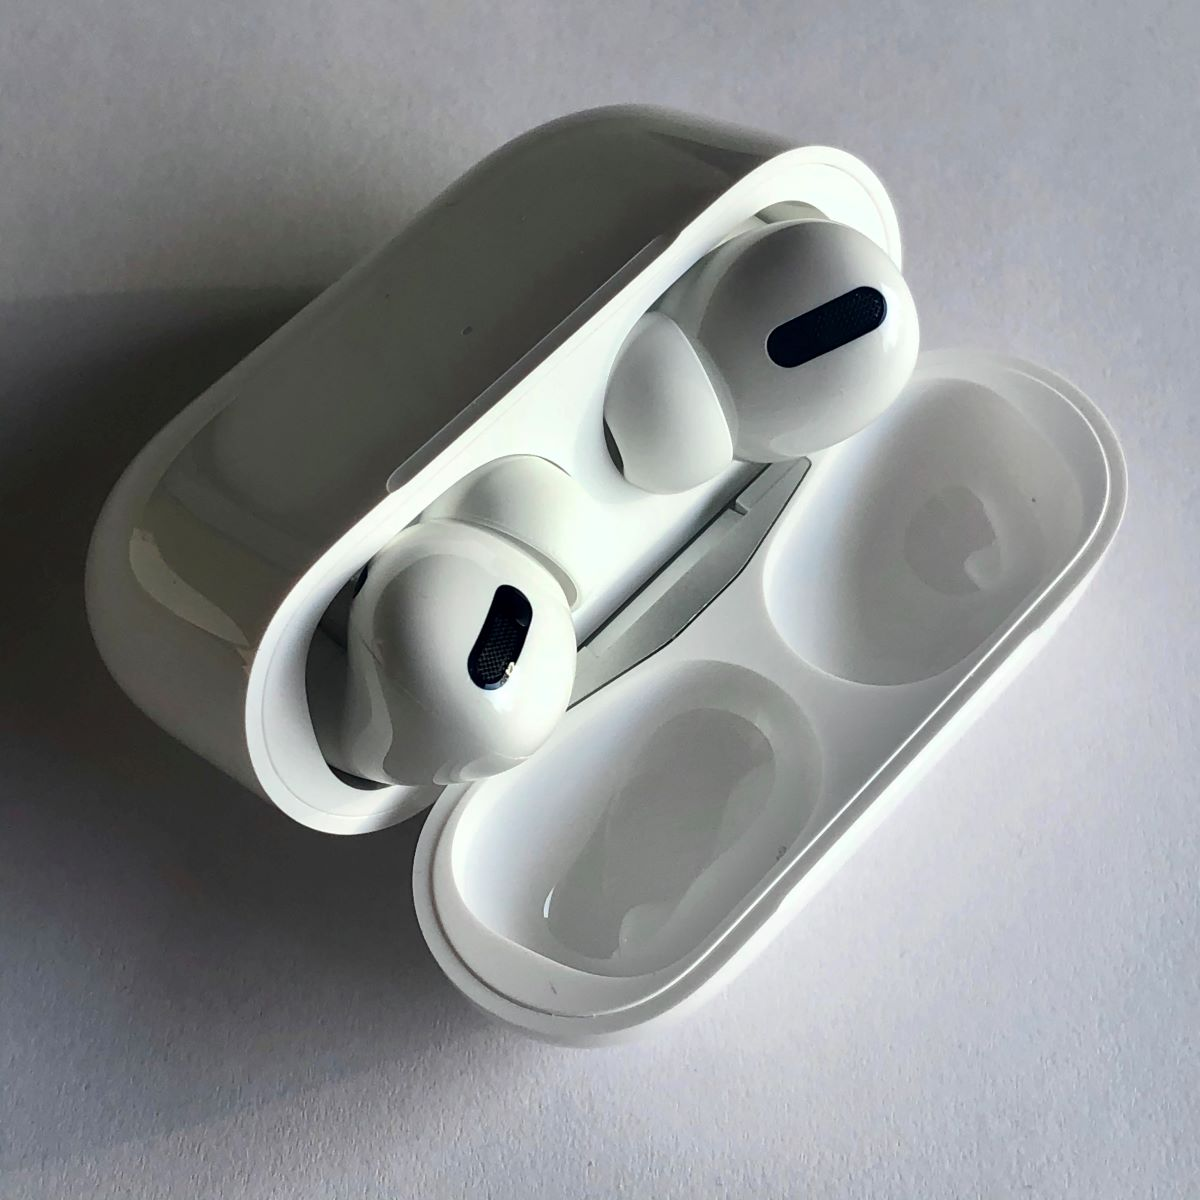 Air pods Pro in their case